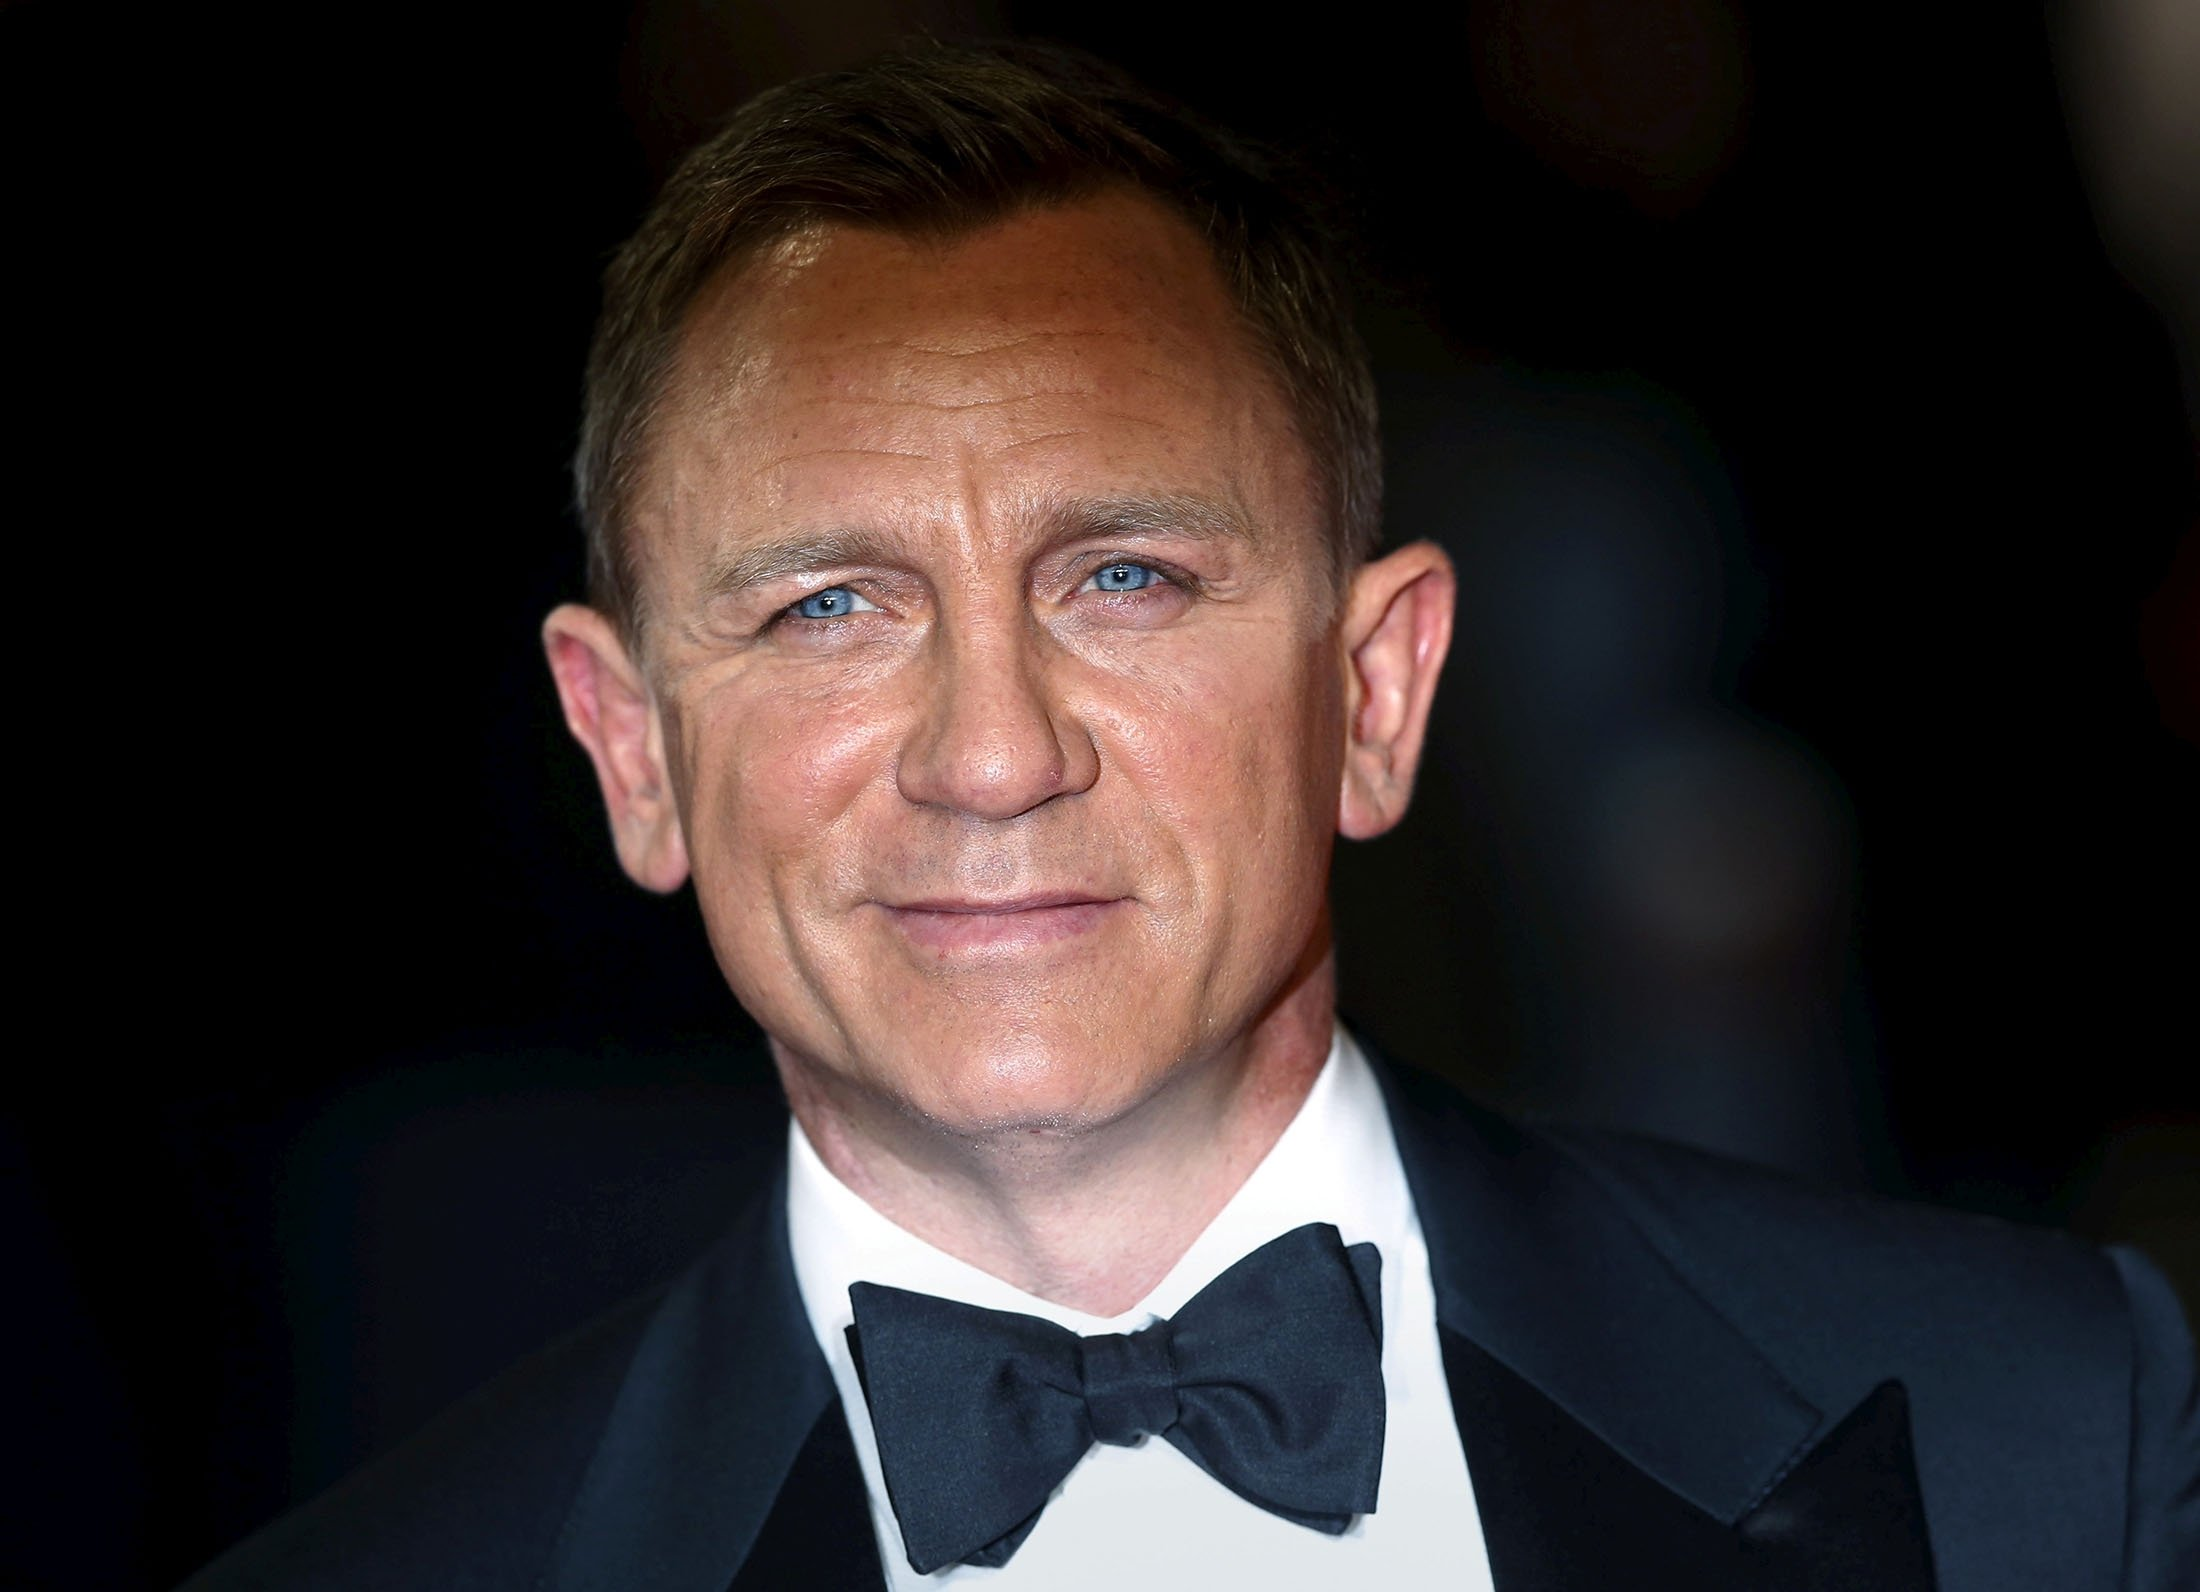 British actor Daniel Craig arrives for the world premiere of his James Bond film 'Spectre' at the Royal Albert Hall in London, U.K., Oct. 26, 2015. (Reuters Photo)